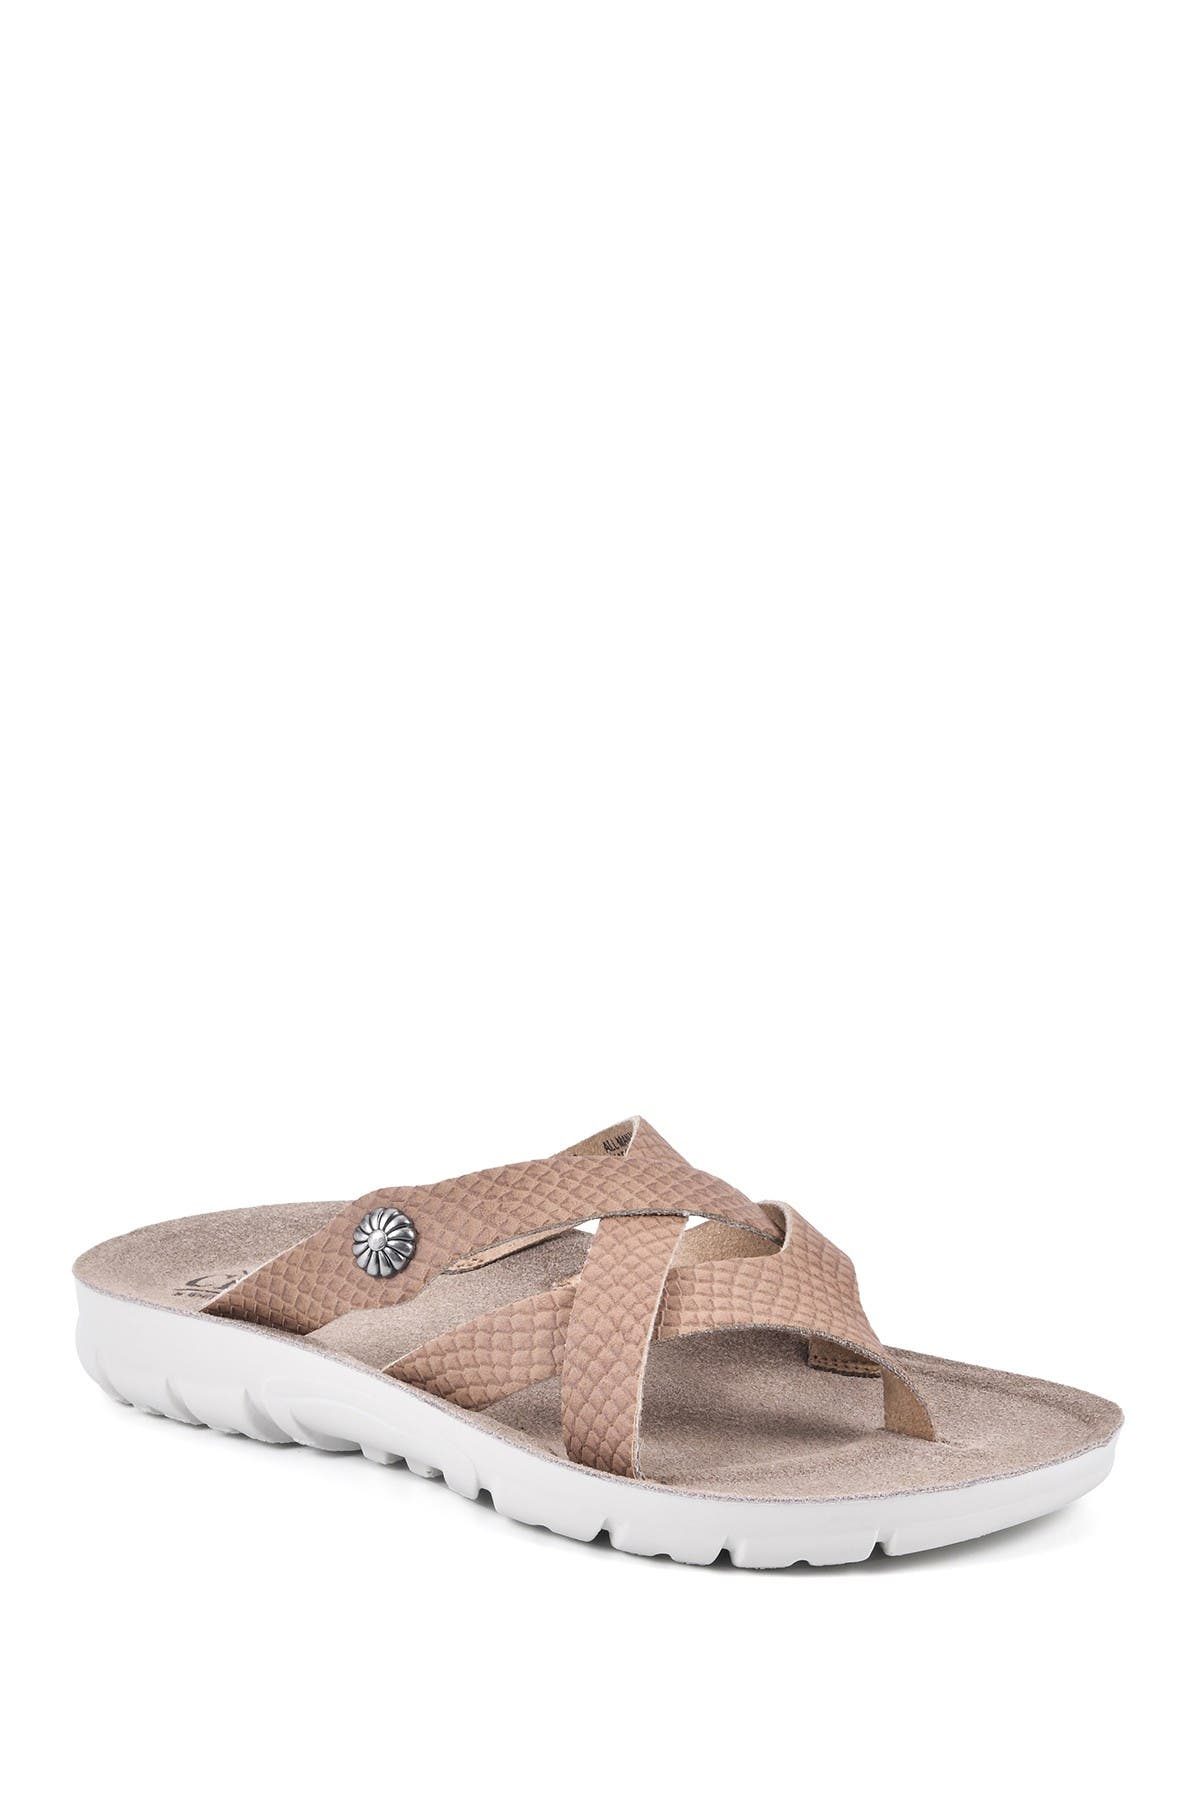 Image of Cliffs by White Mountain Cienna Thong Comfort Sandal